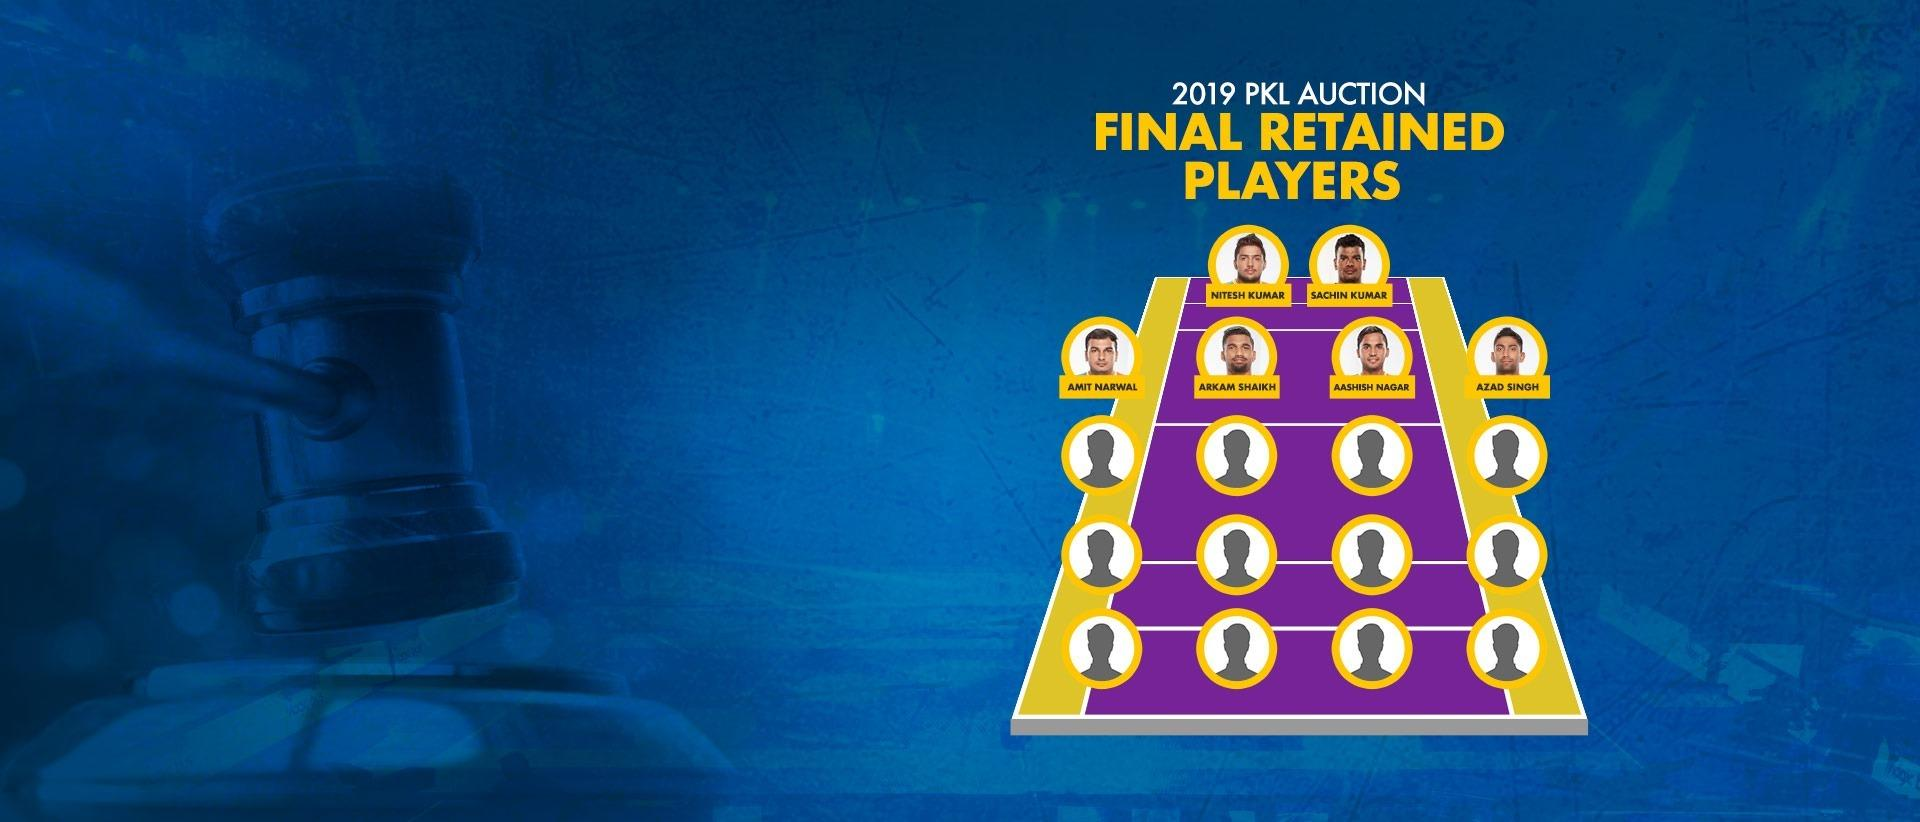 PKL Season 7 auction - A defining chapter